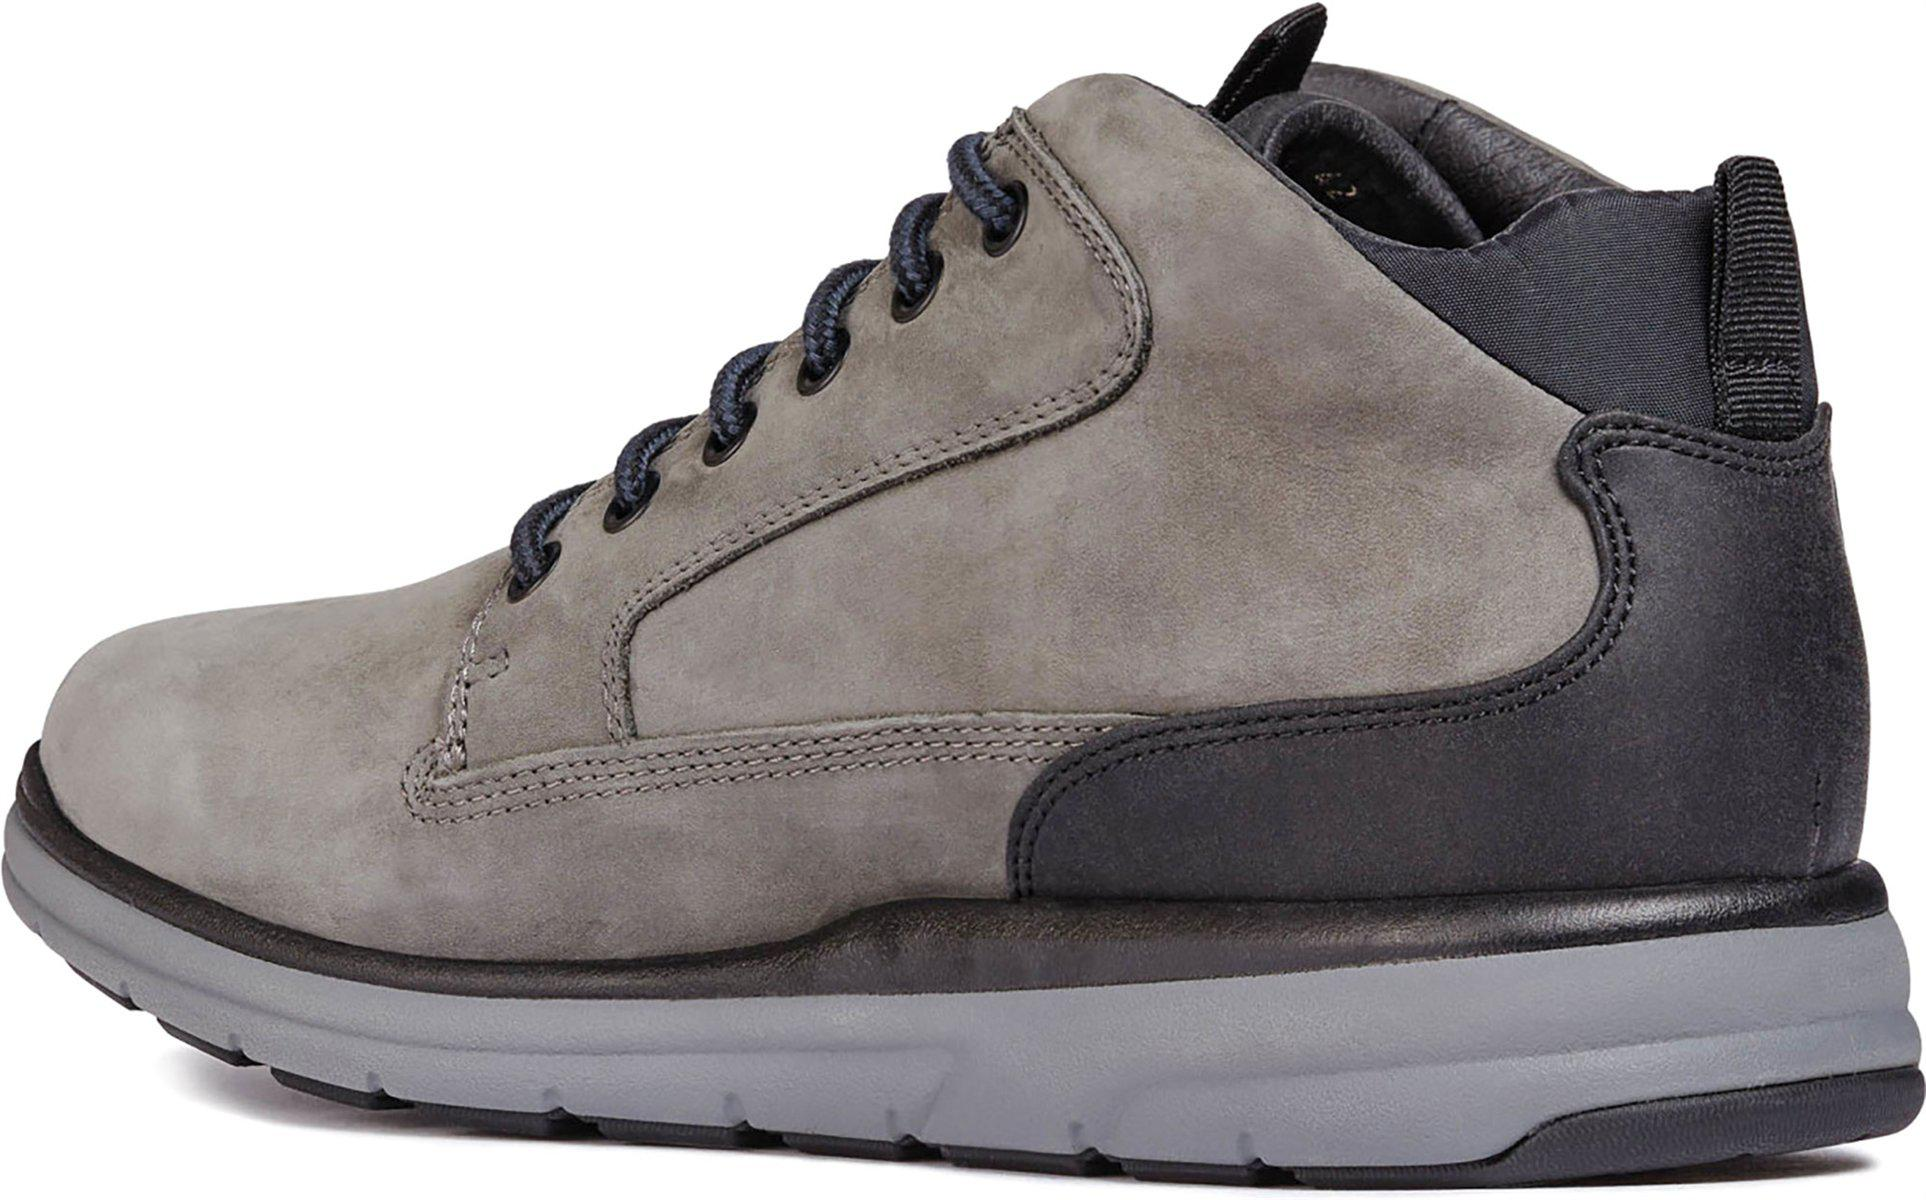 Lyst - Geox Hallson in Gray for Men d131c5fdbfc